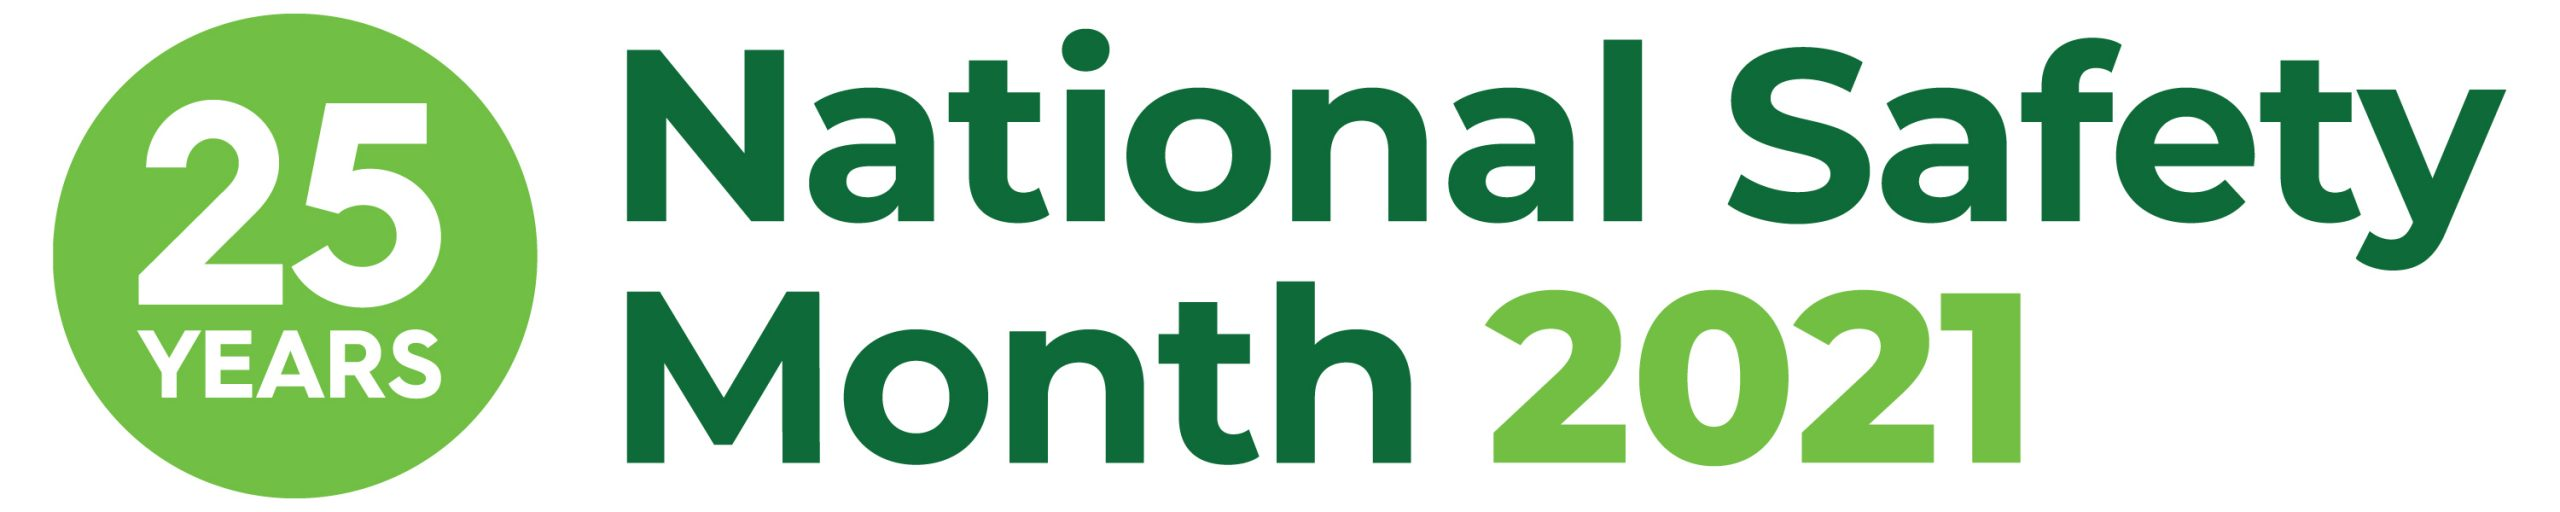 25th Anniversary green and white National Safety Month logo - week one's topic is about preventing accidents before they occur.